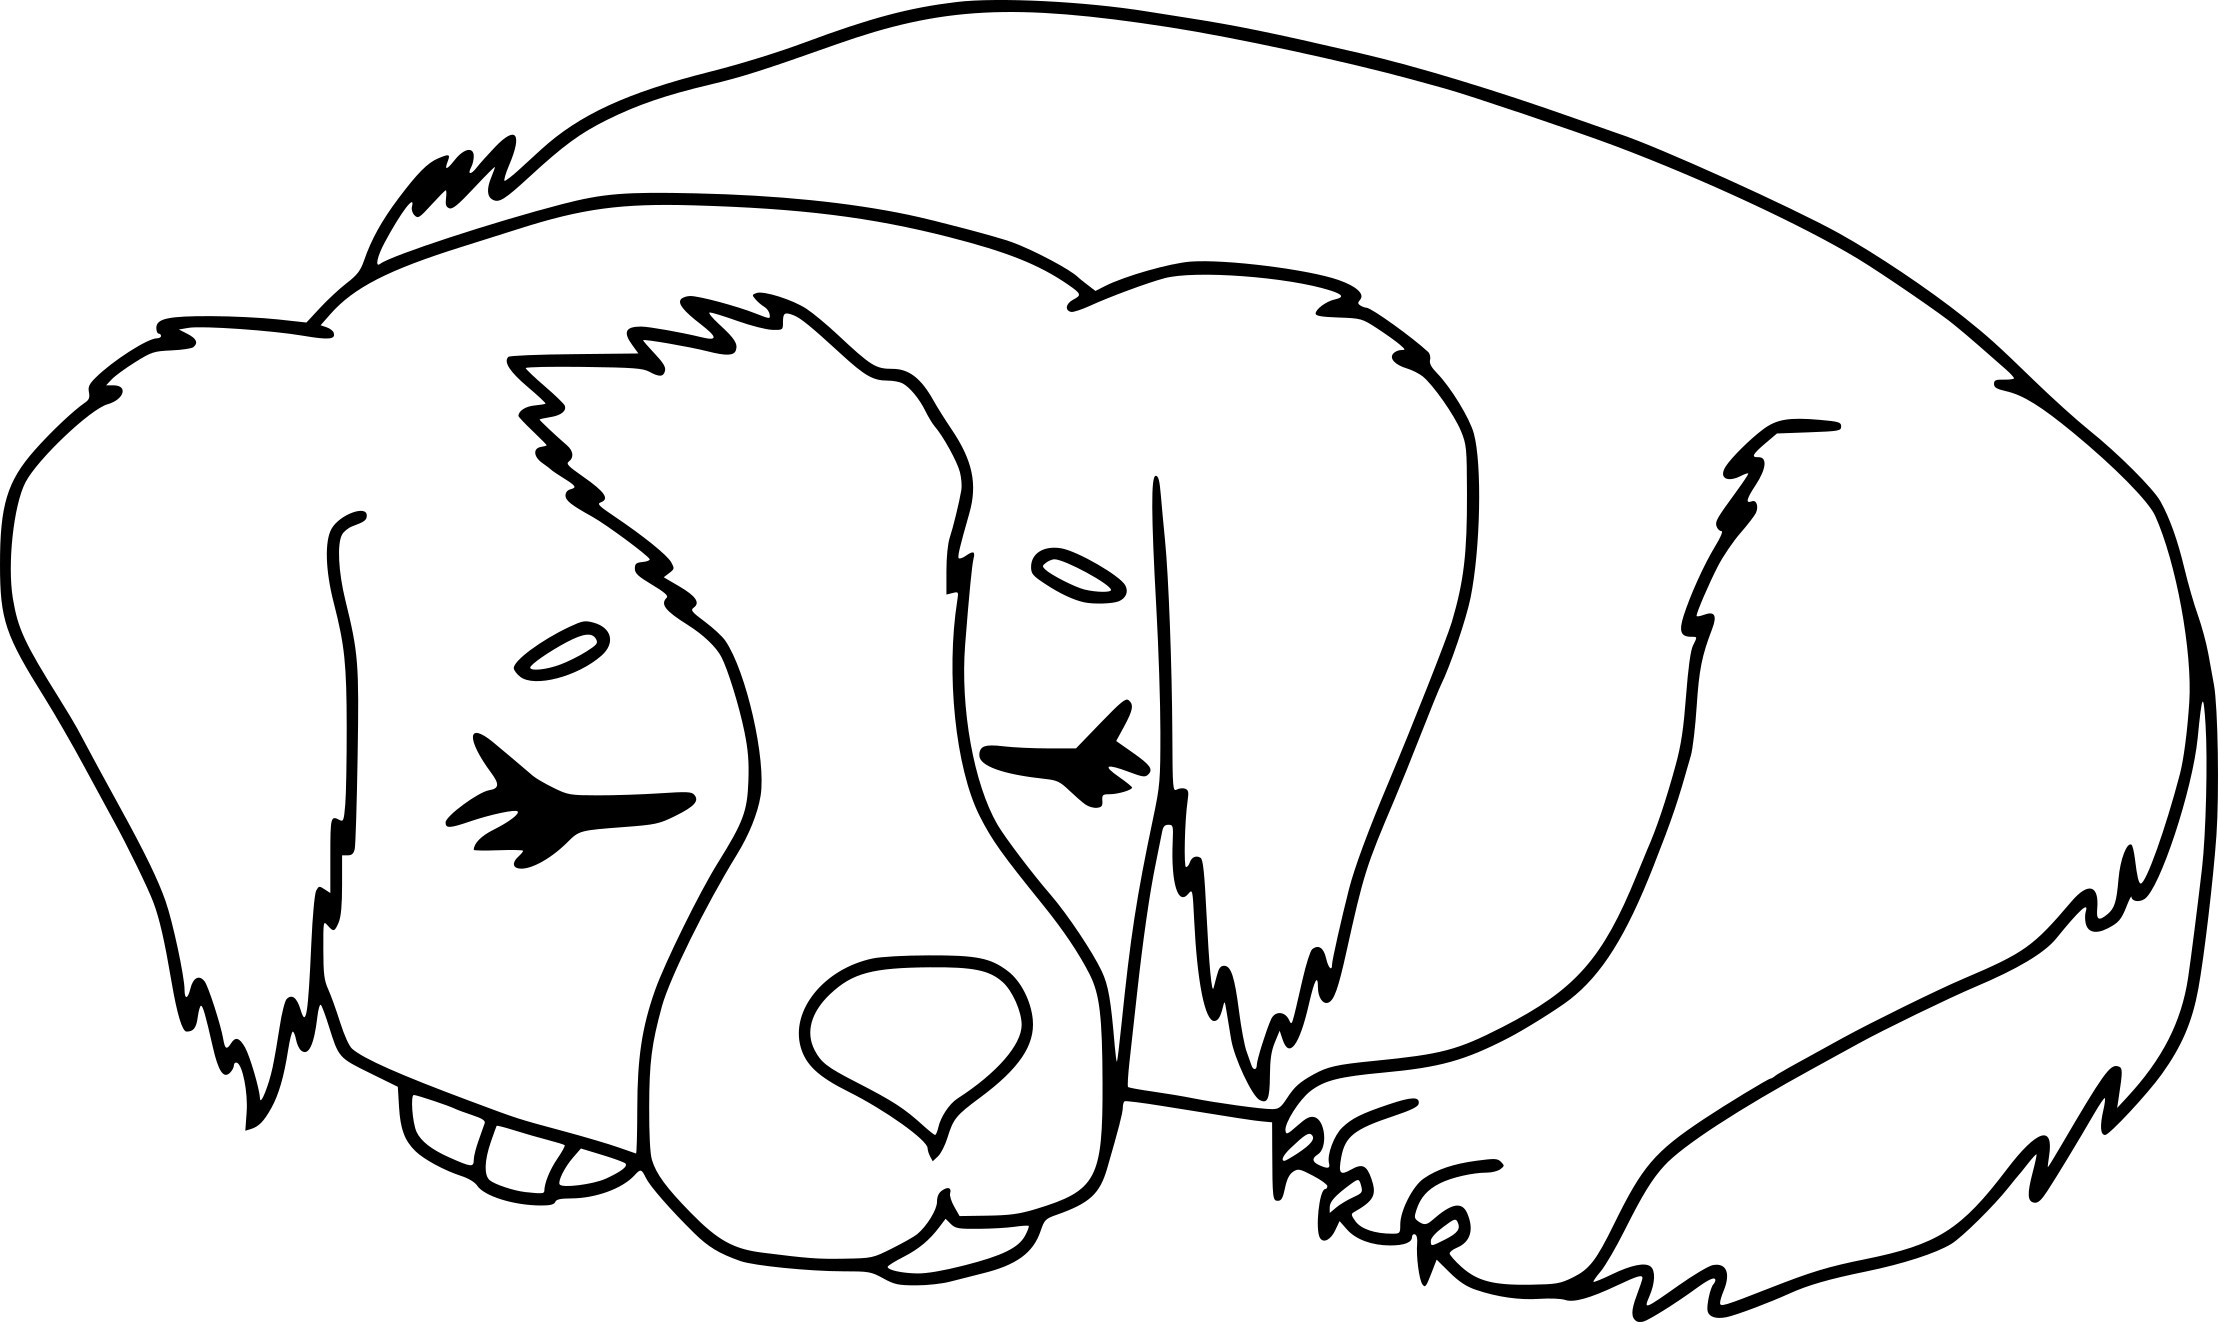 Coloring pages printable coloring pages free coloring pages coloring - Coloriage Chien Qui Dort 224 Imprimer